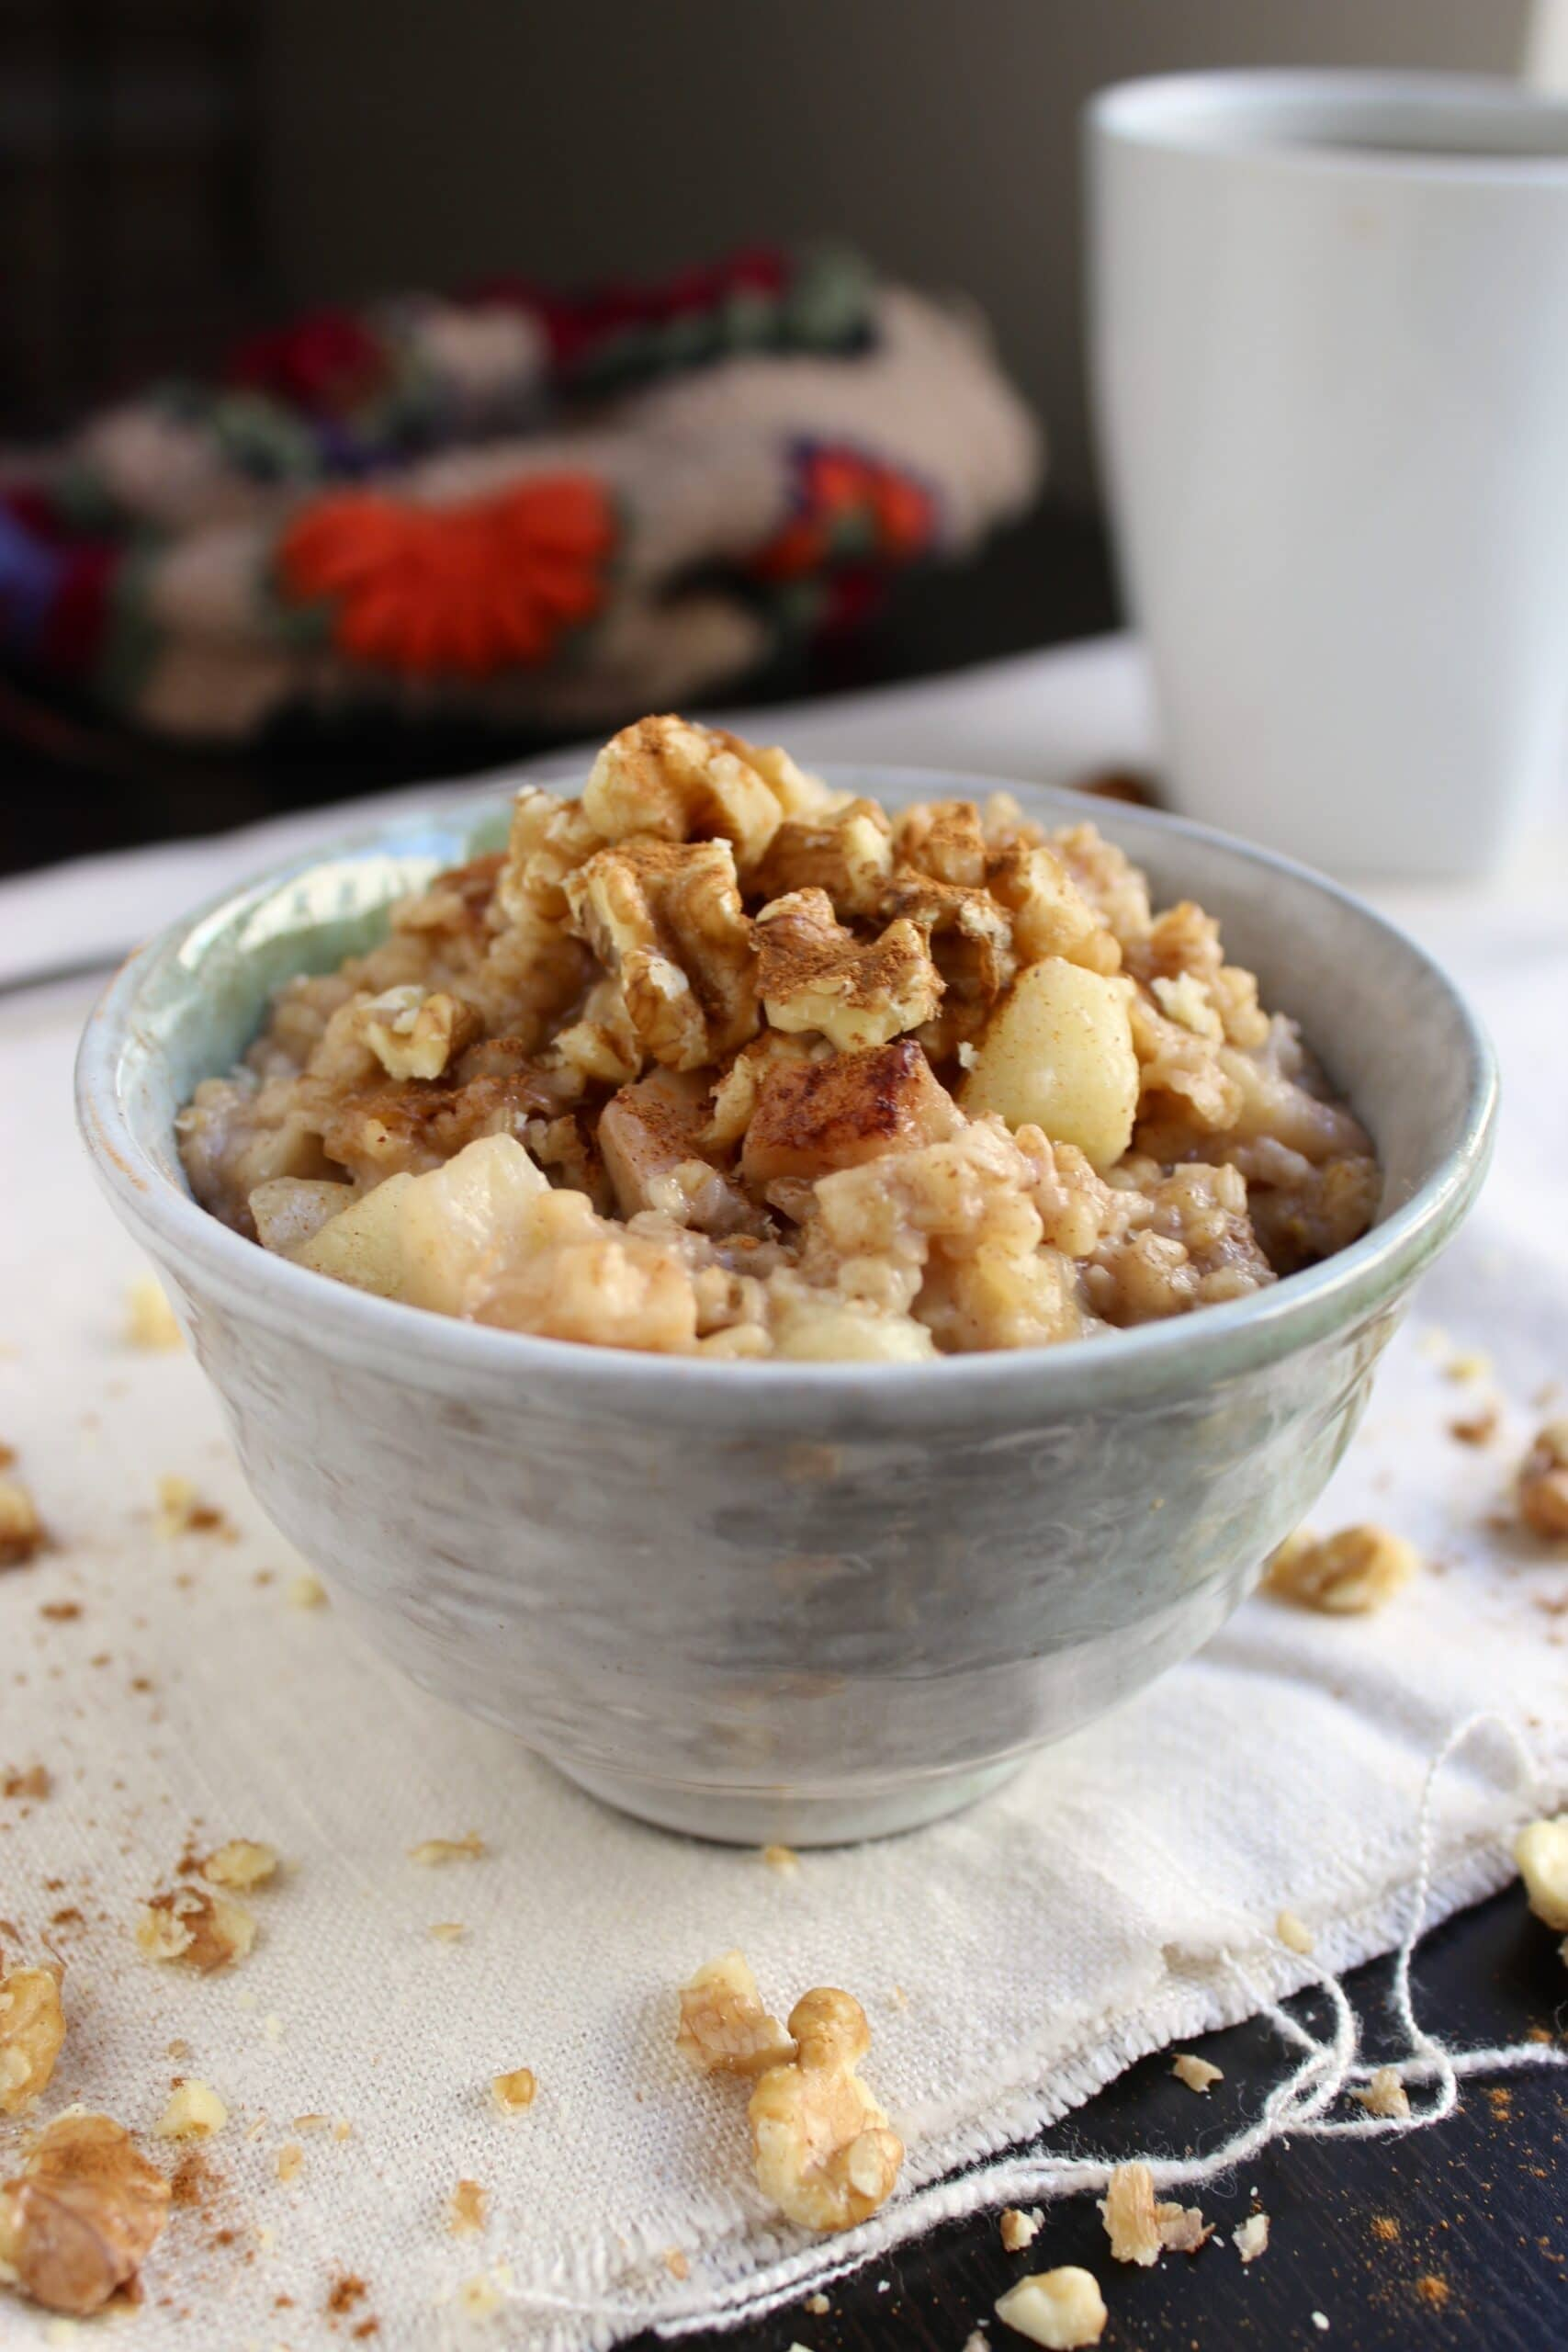 Overnight Slow Cooker Oatmeal – Cinnamon Apple - The Fitchen